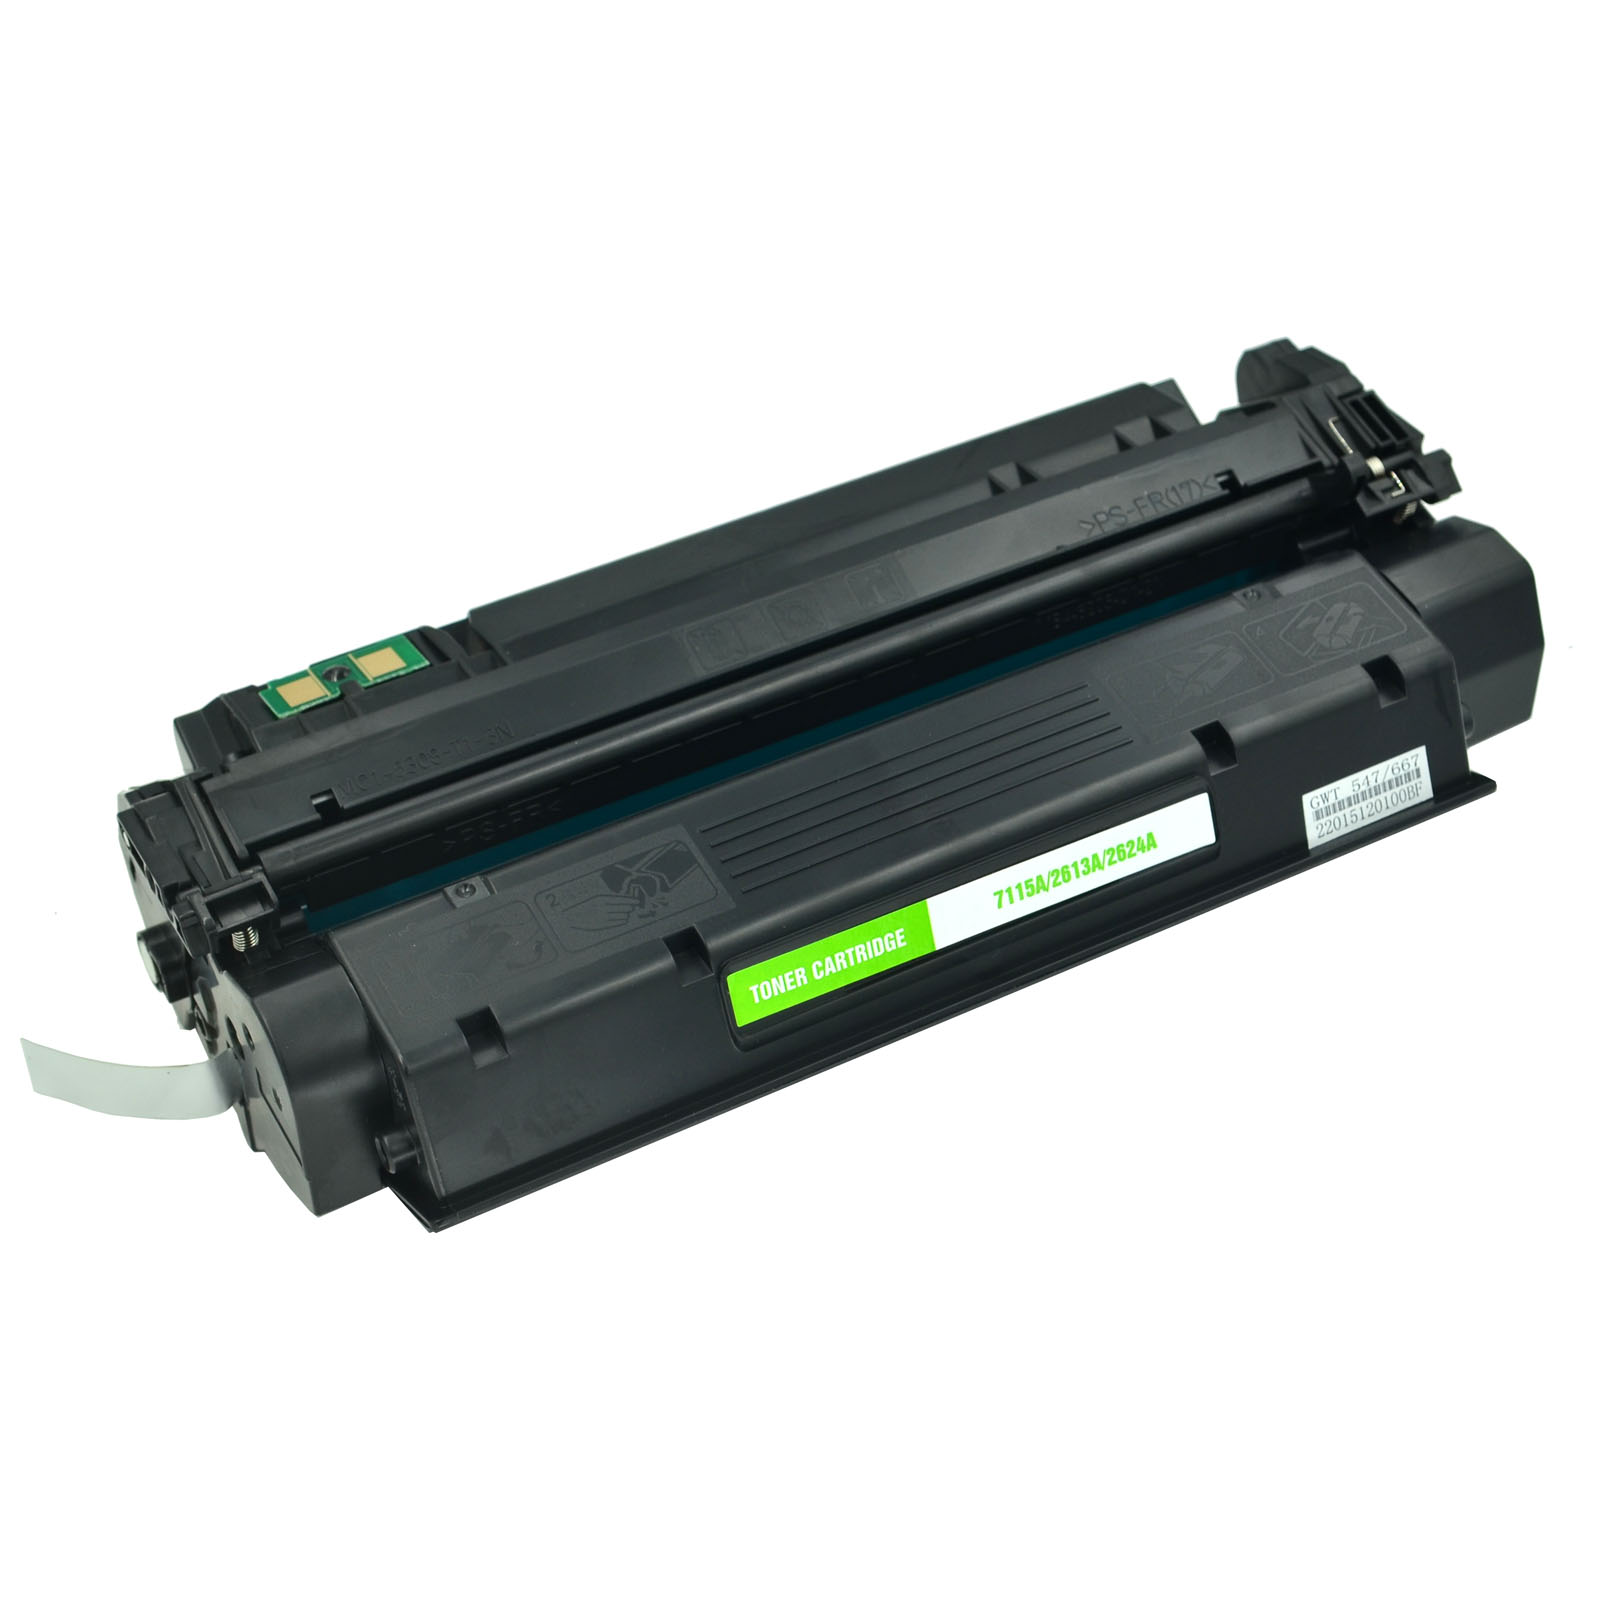 Replacement For Hp C7115a 15a Black Toner Cartridge